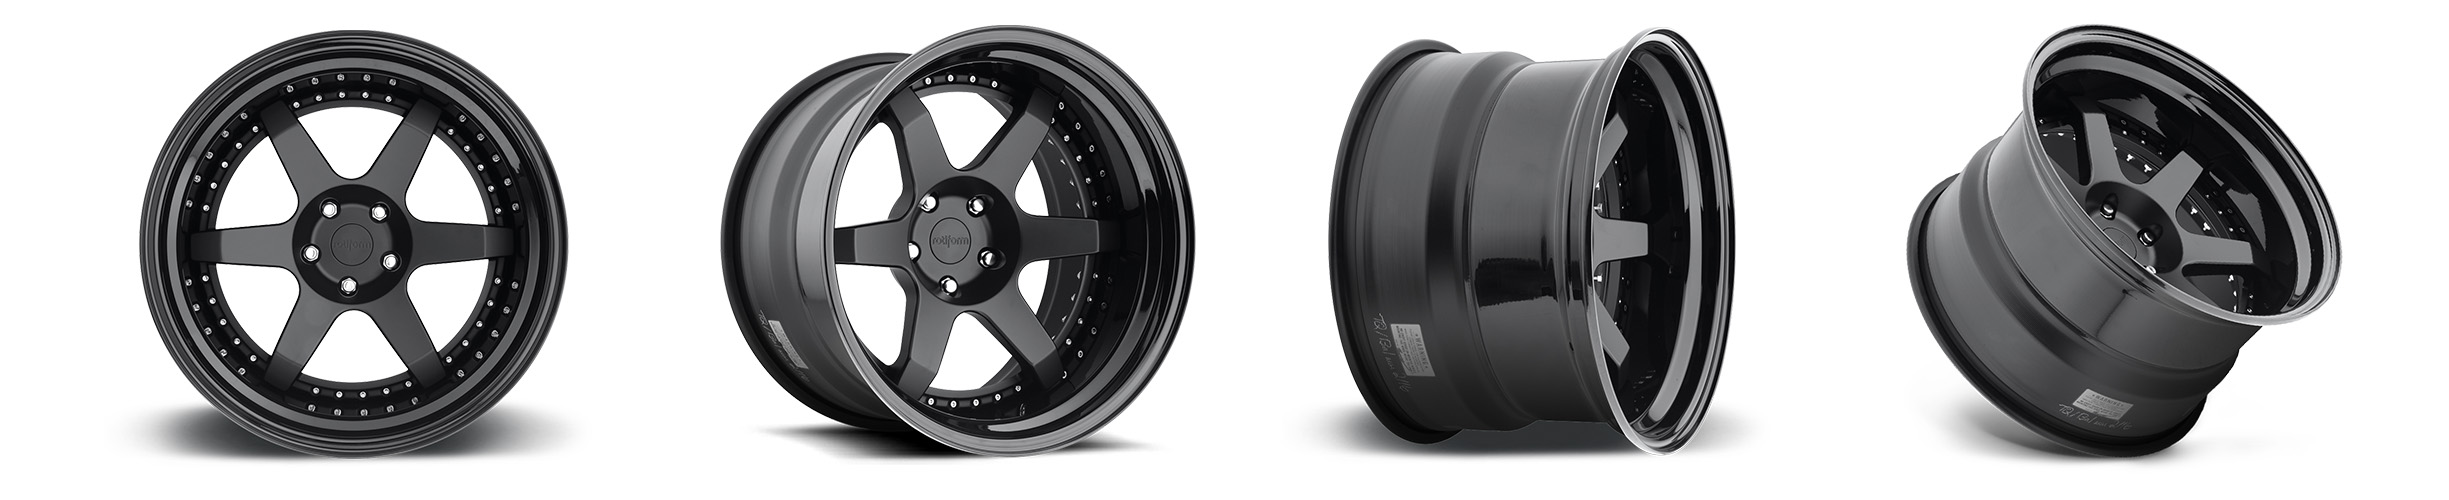 rotiform six wheels with Rims Online pictures.